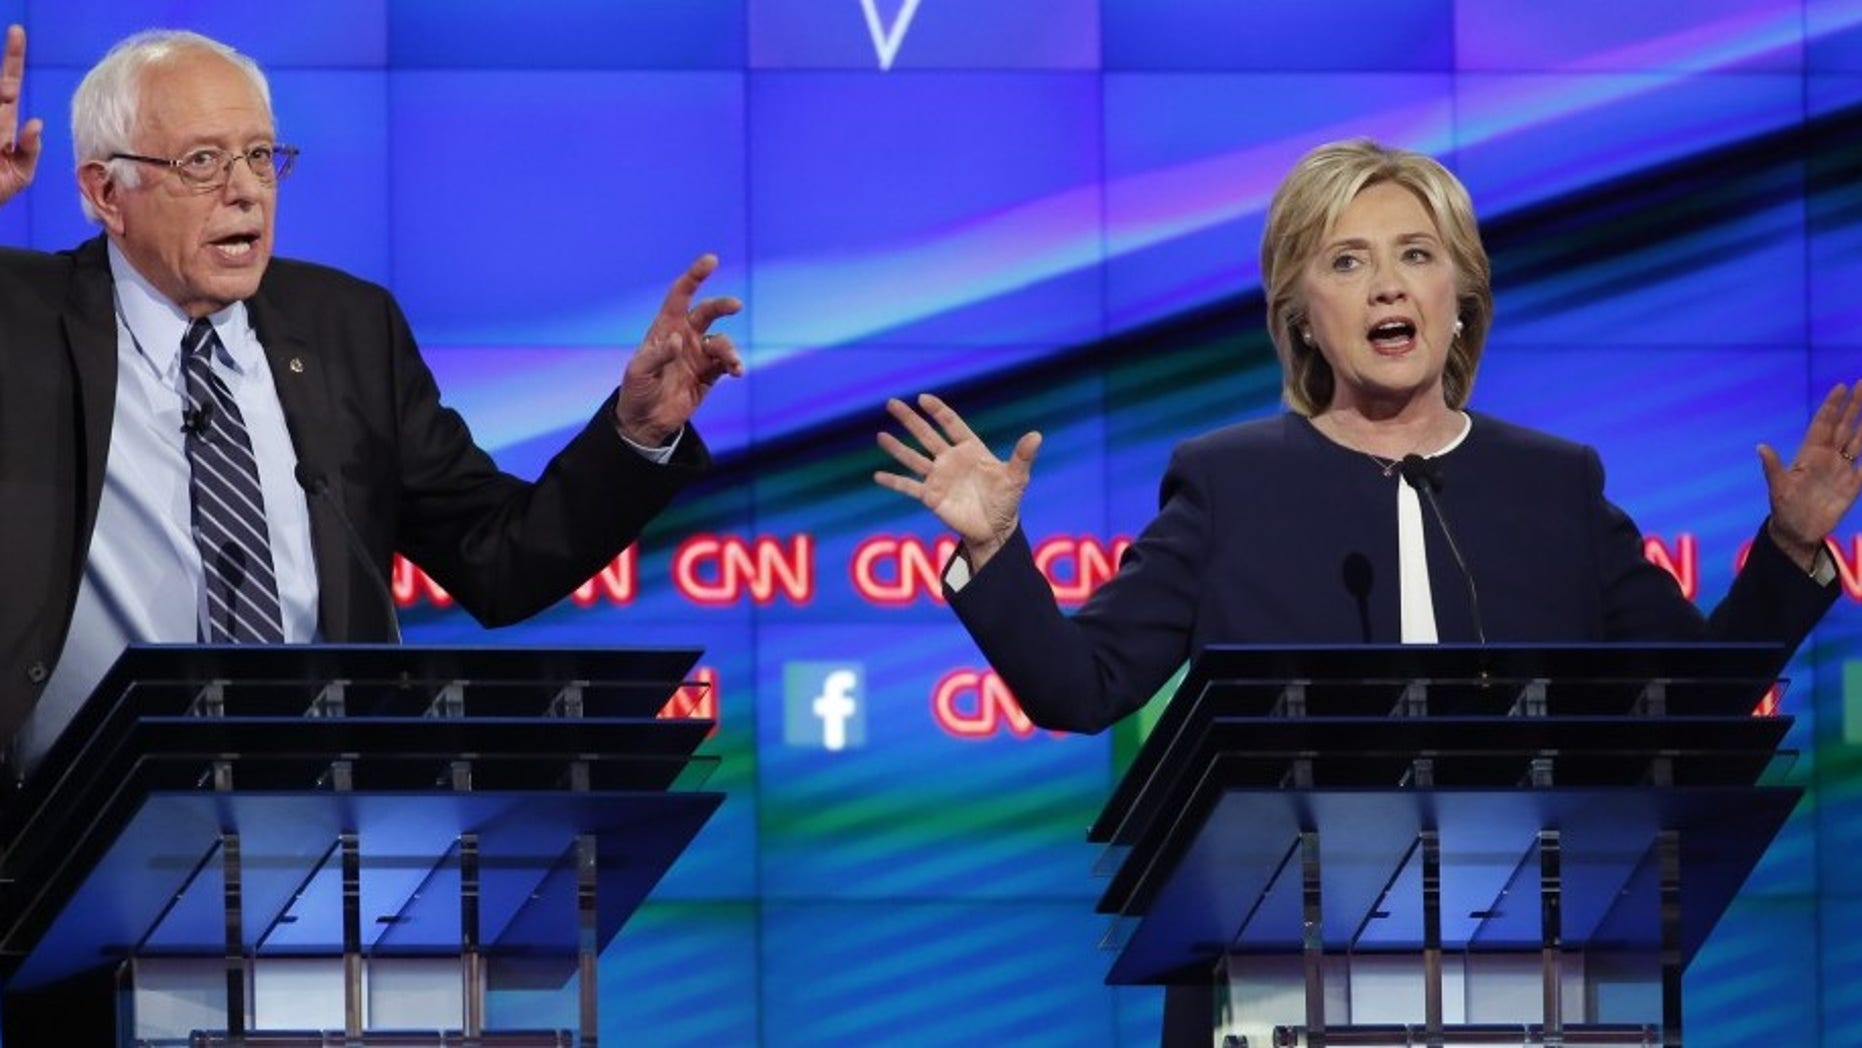 Democratic presidential candidates Sen. Bernie Sanders and former Secretary of State Hillary Clinton debate during the first official Democratic candidates debate of the 2016 presidential campaign in Las Vegas, Oct. 13, 2015. (REUTERS/Lucy Nicholson)